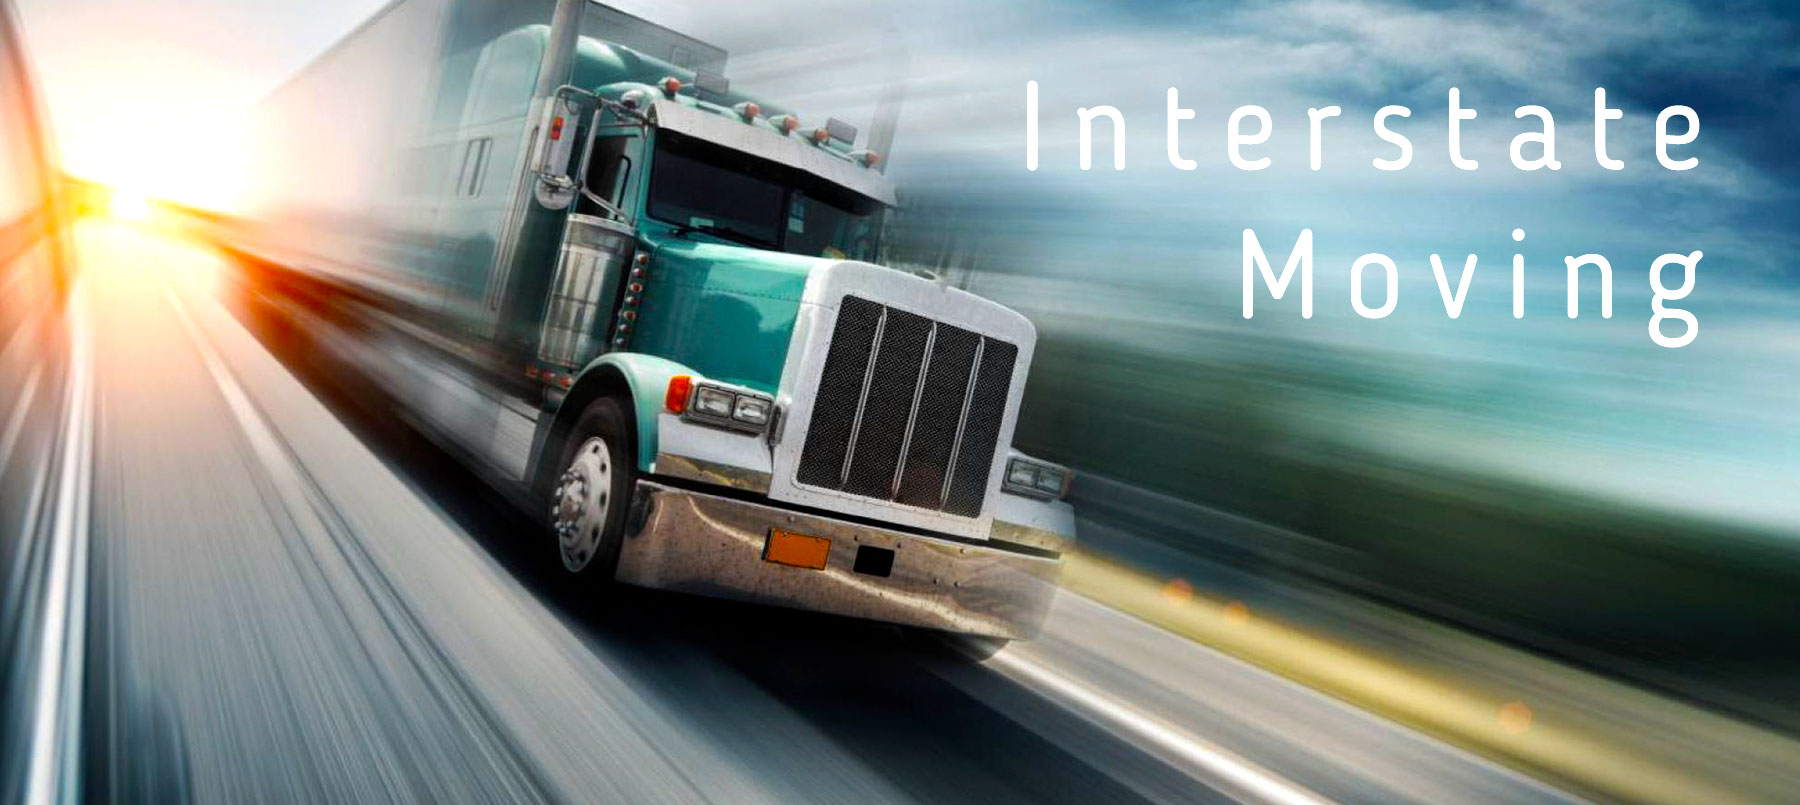 Interstate Movers